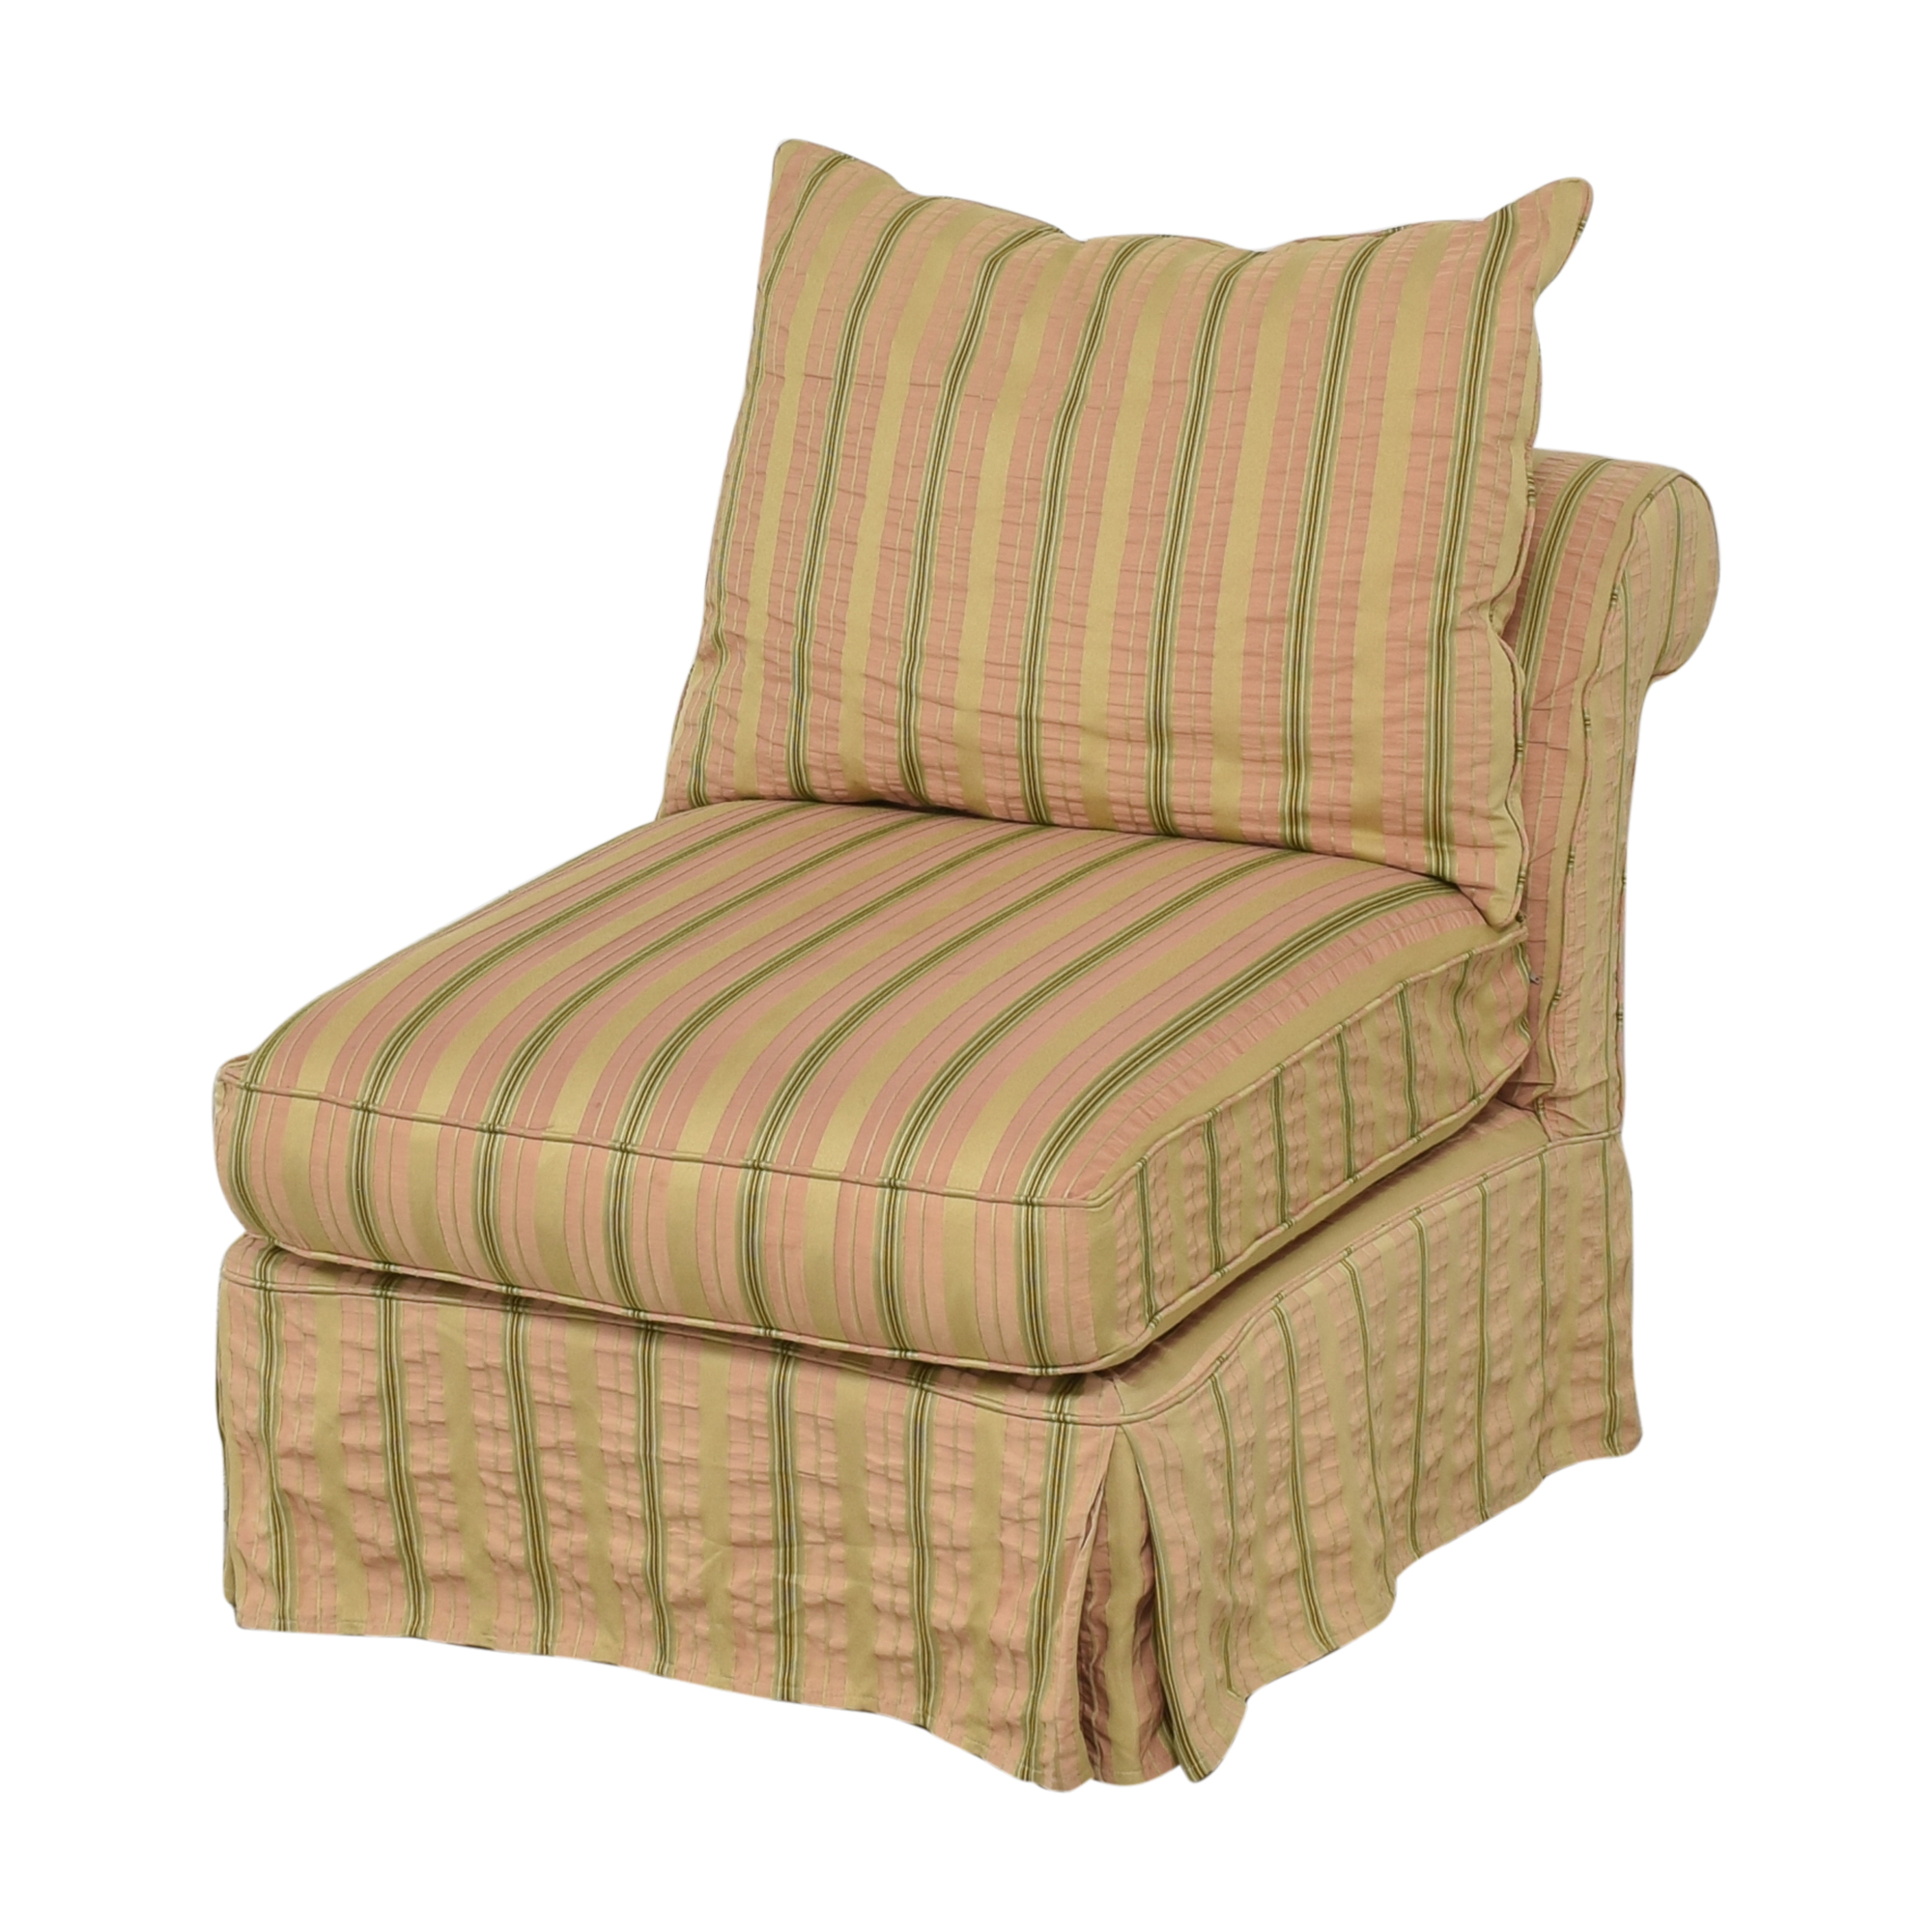 shop Domain Home Slipcovered Slipper Lounge Chair Domain Home Accent Chairs